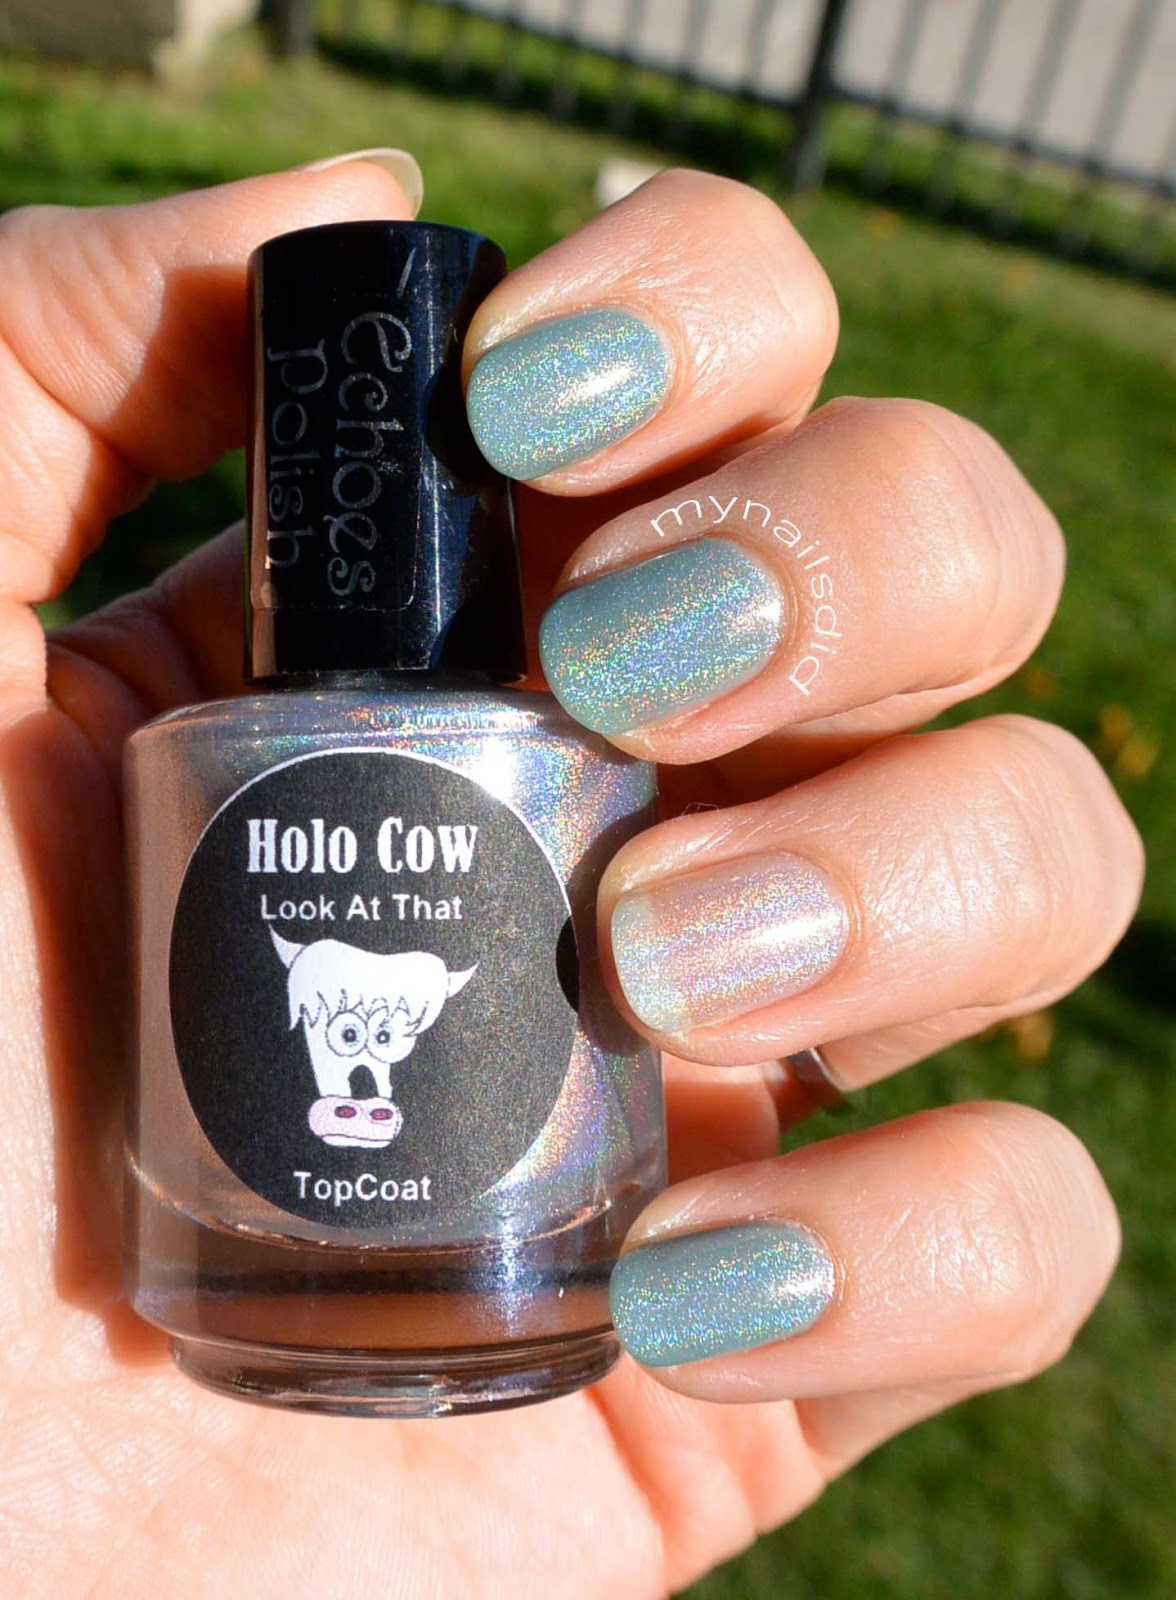 My Nails Did: Echoes Holo Cow Look at That Swatch